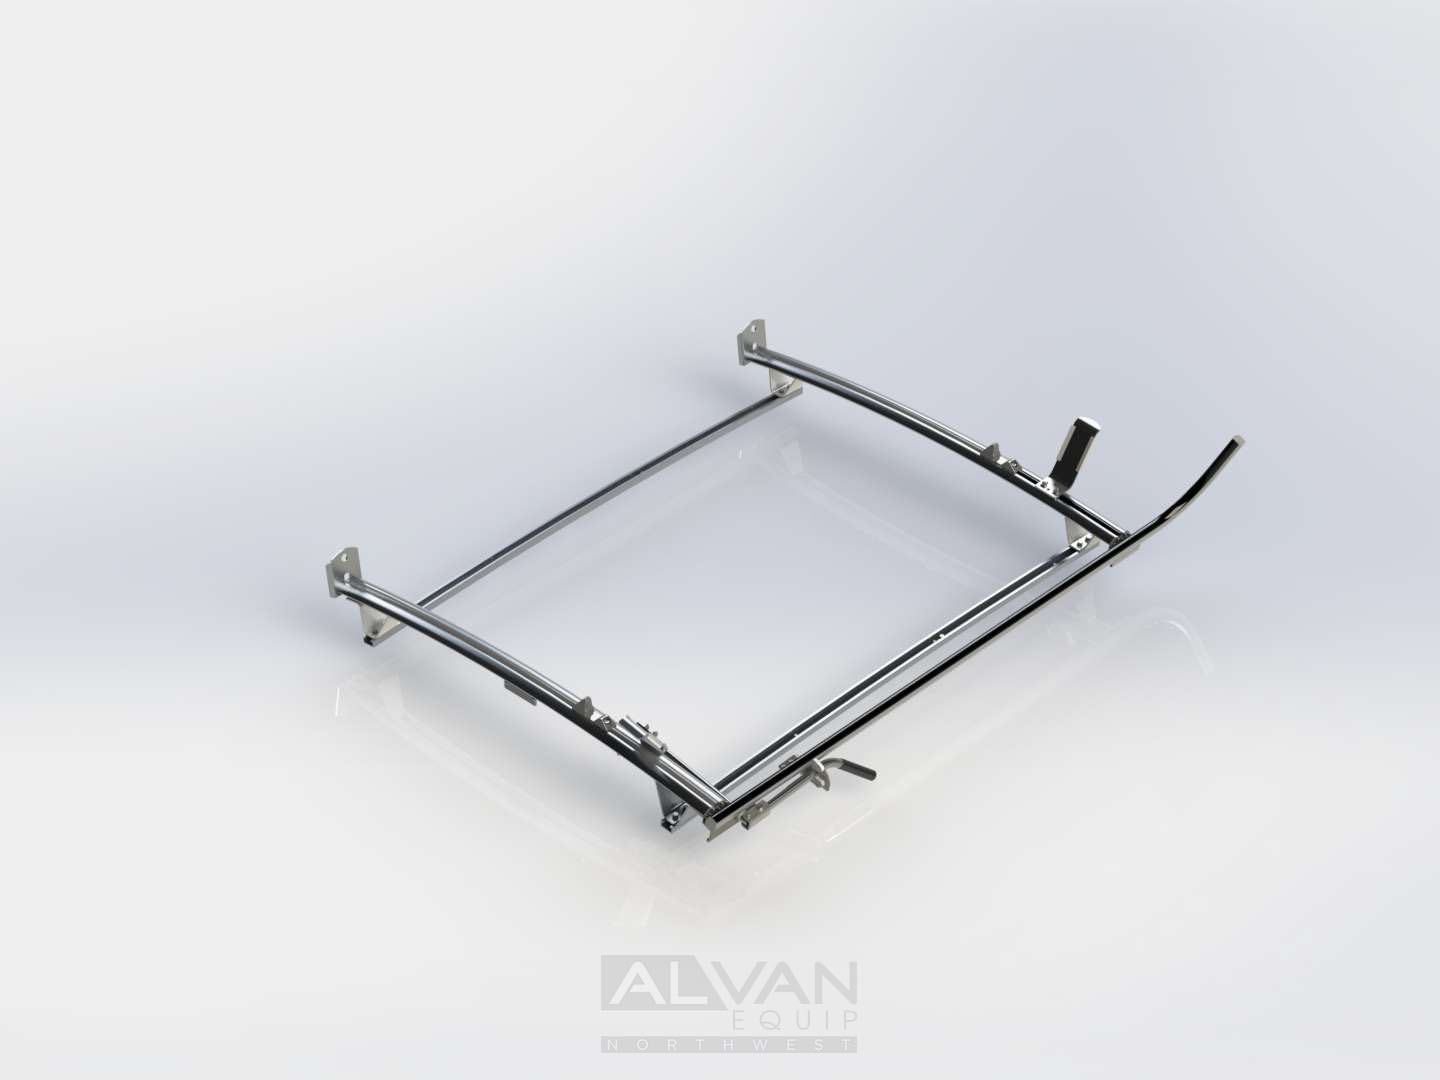 express chevy down rotation ladder lock metris city nissan rack for the vcr aluminum combo